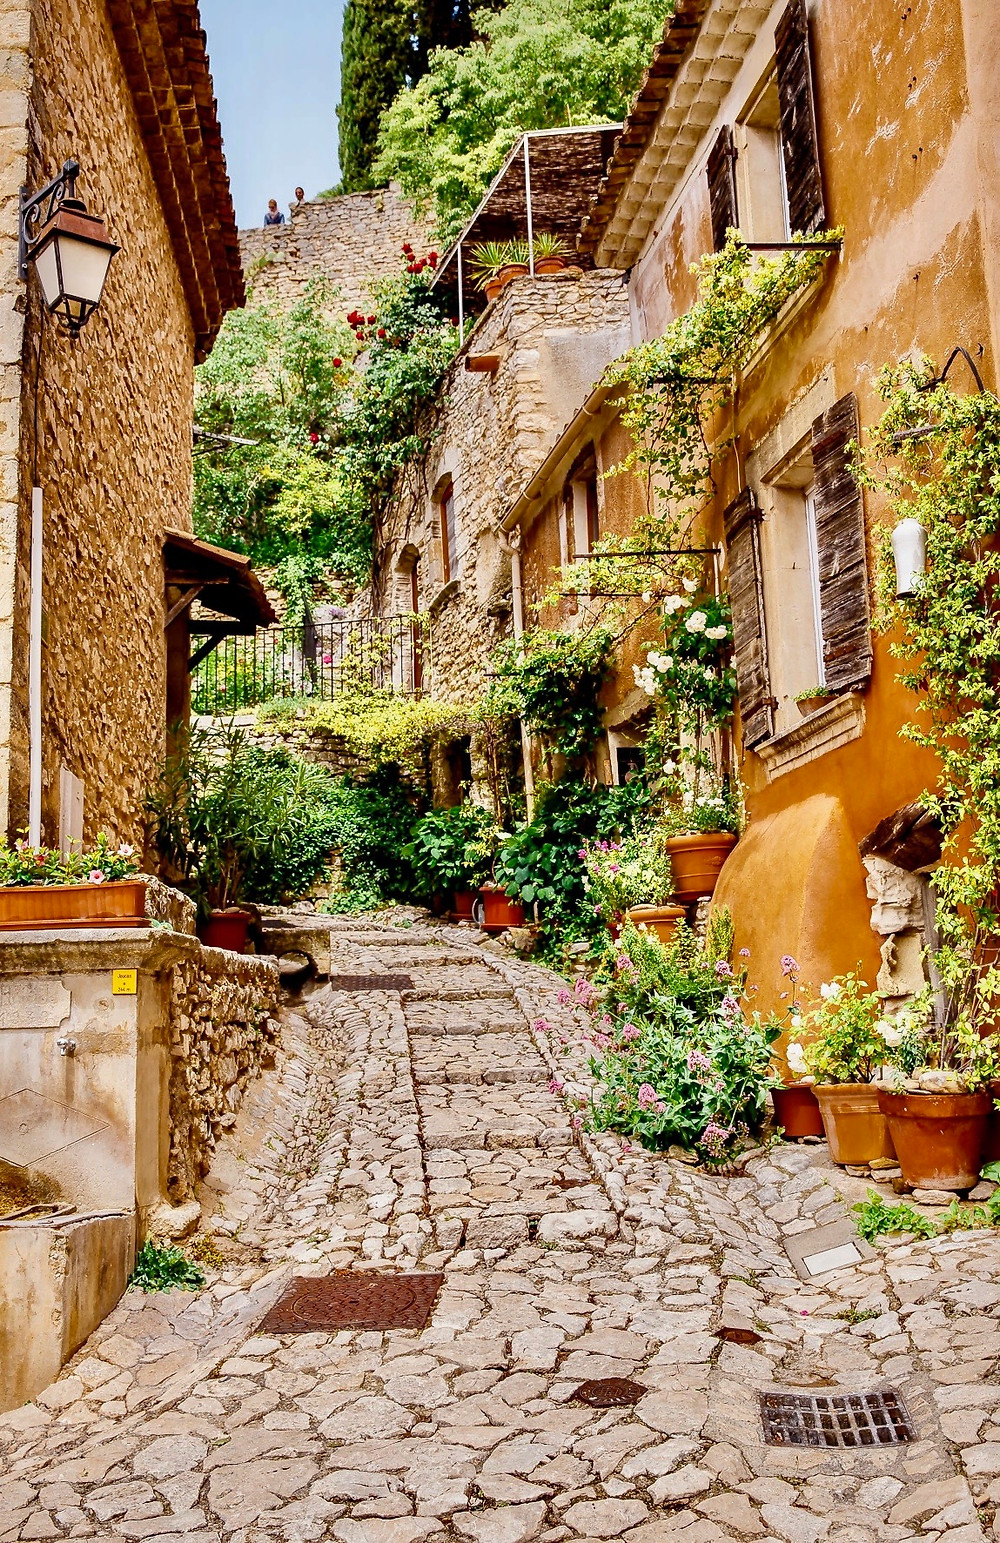 picturesque ancient alley in the medieval village of Lacoste